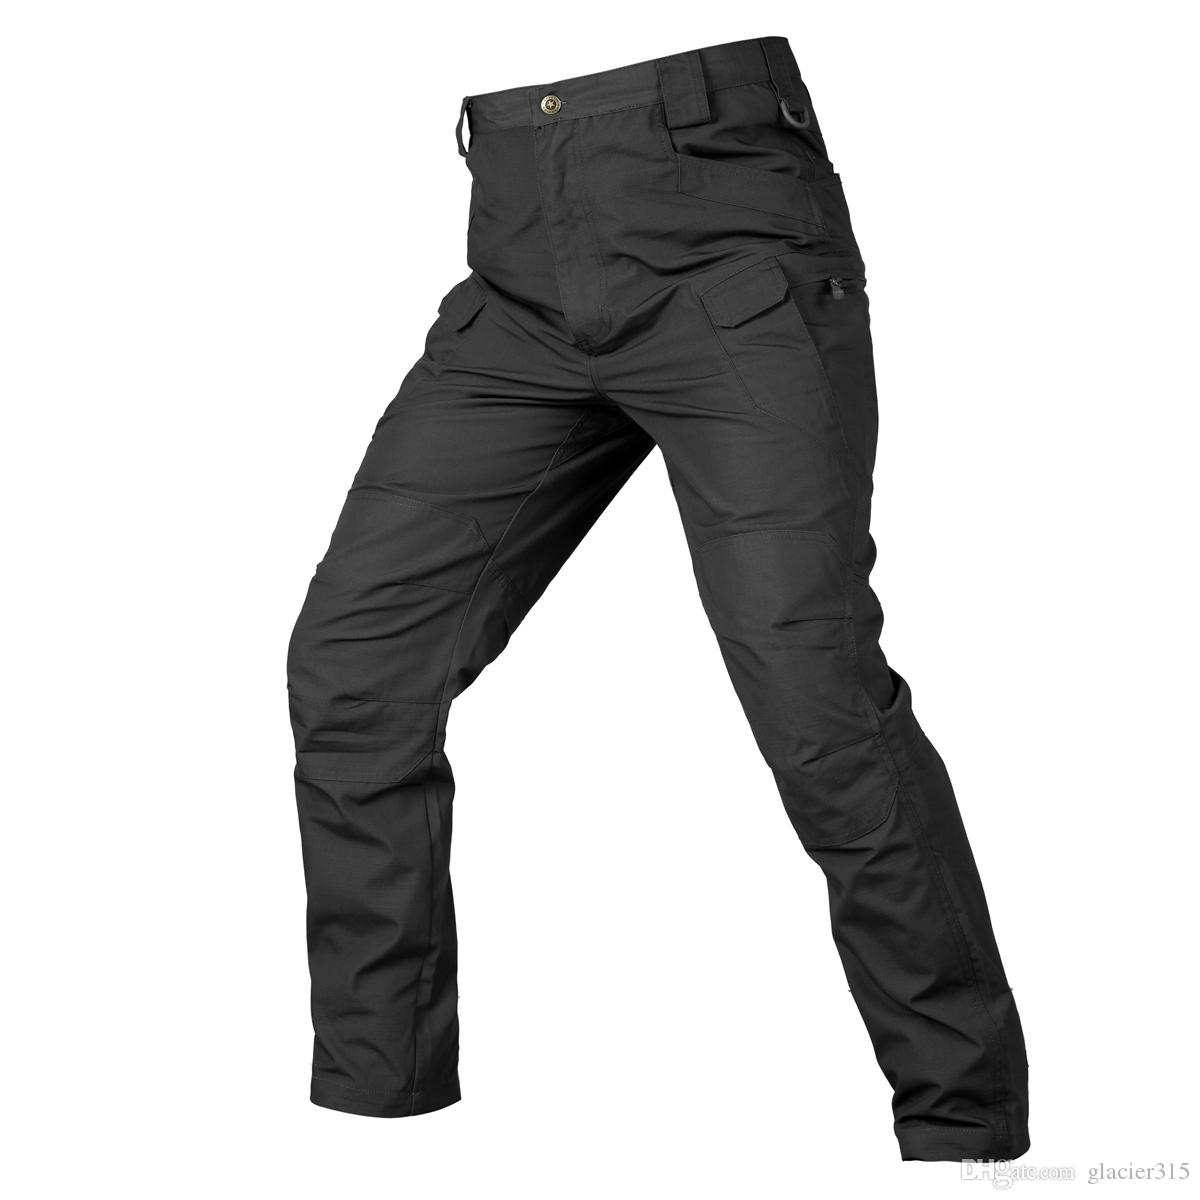 Shanghai Story 2018 Men Tactical Pants Mens Blend Cotton Army Cargo Pants SWAT Combat Hike cargo pants Trouser IX7